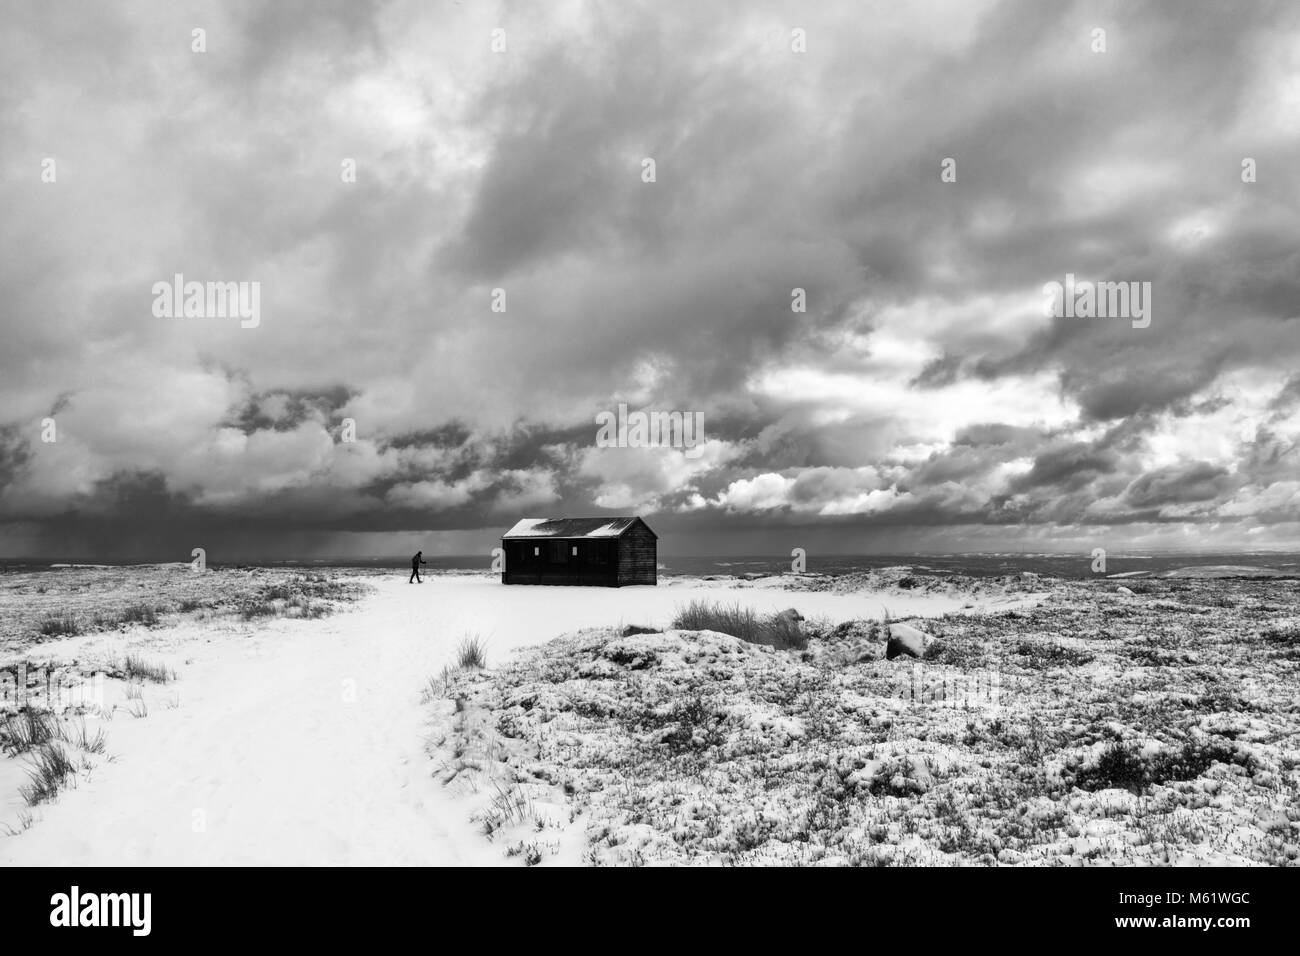 monochrome image of a man walking alone on the moors on a snowy day with a dramatic sky - Stock Image